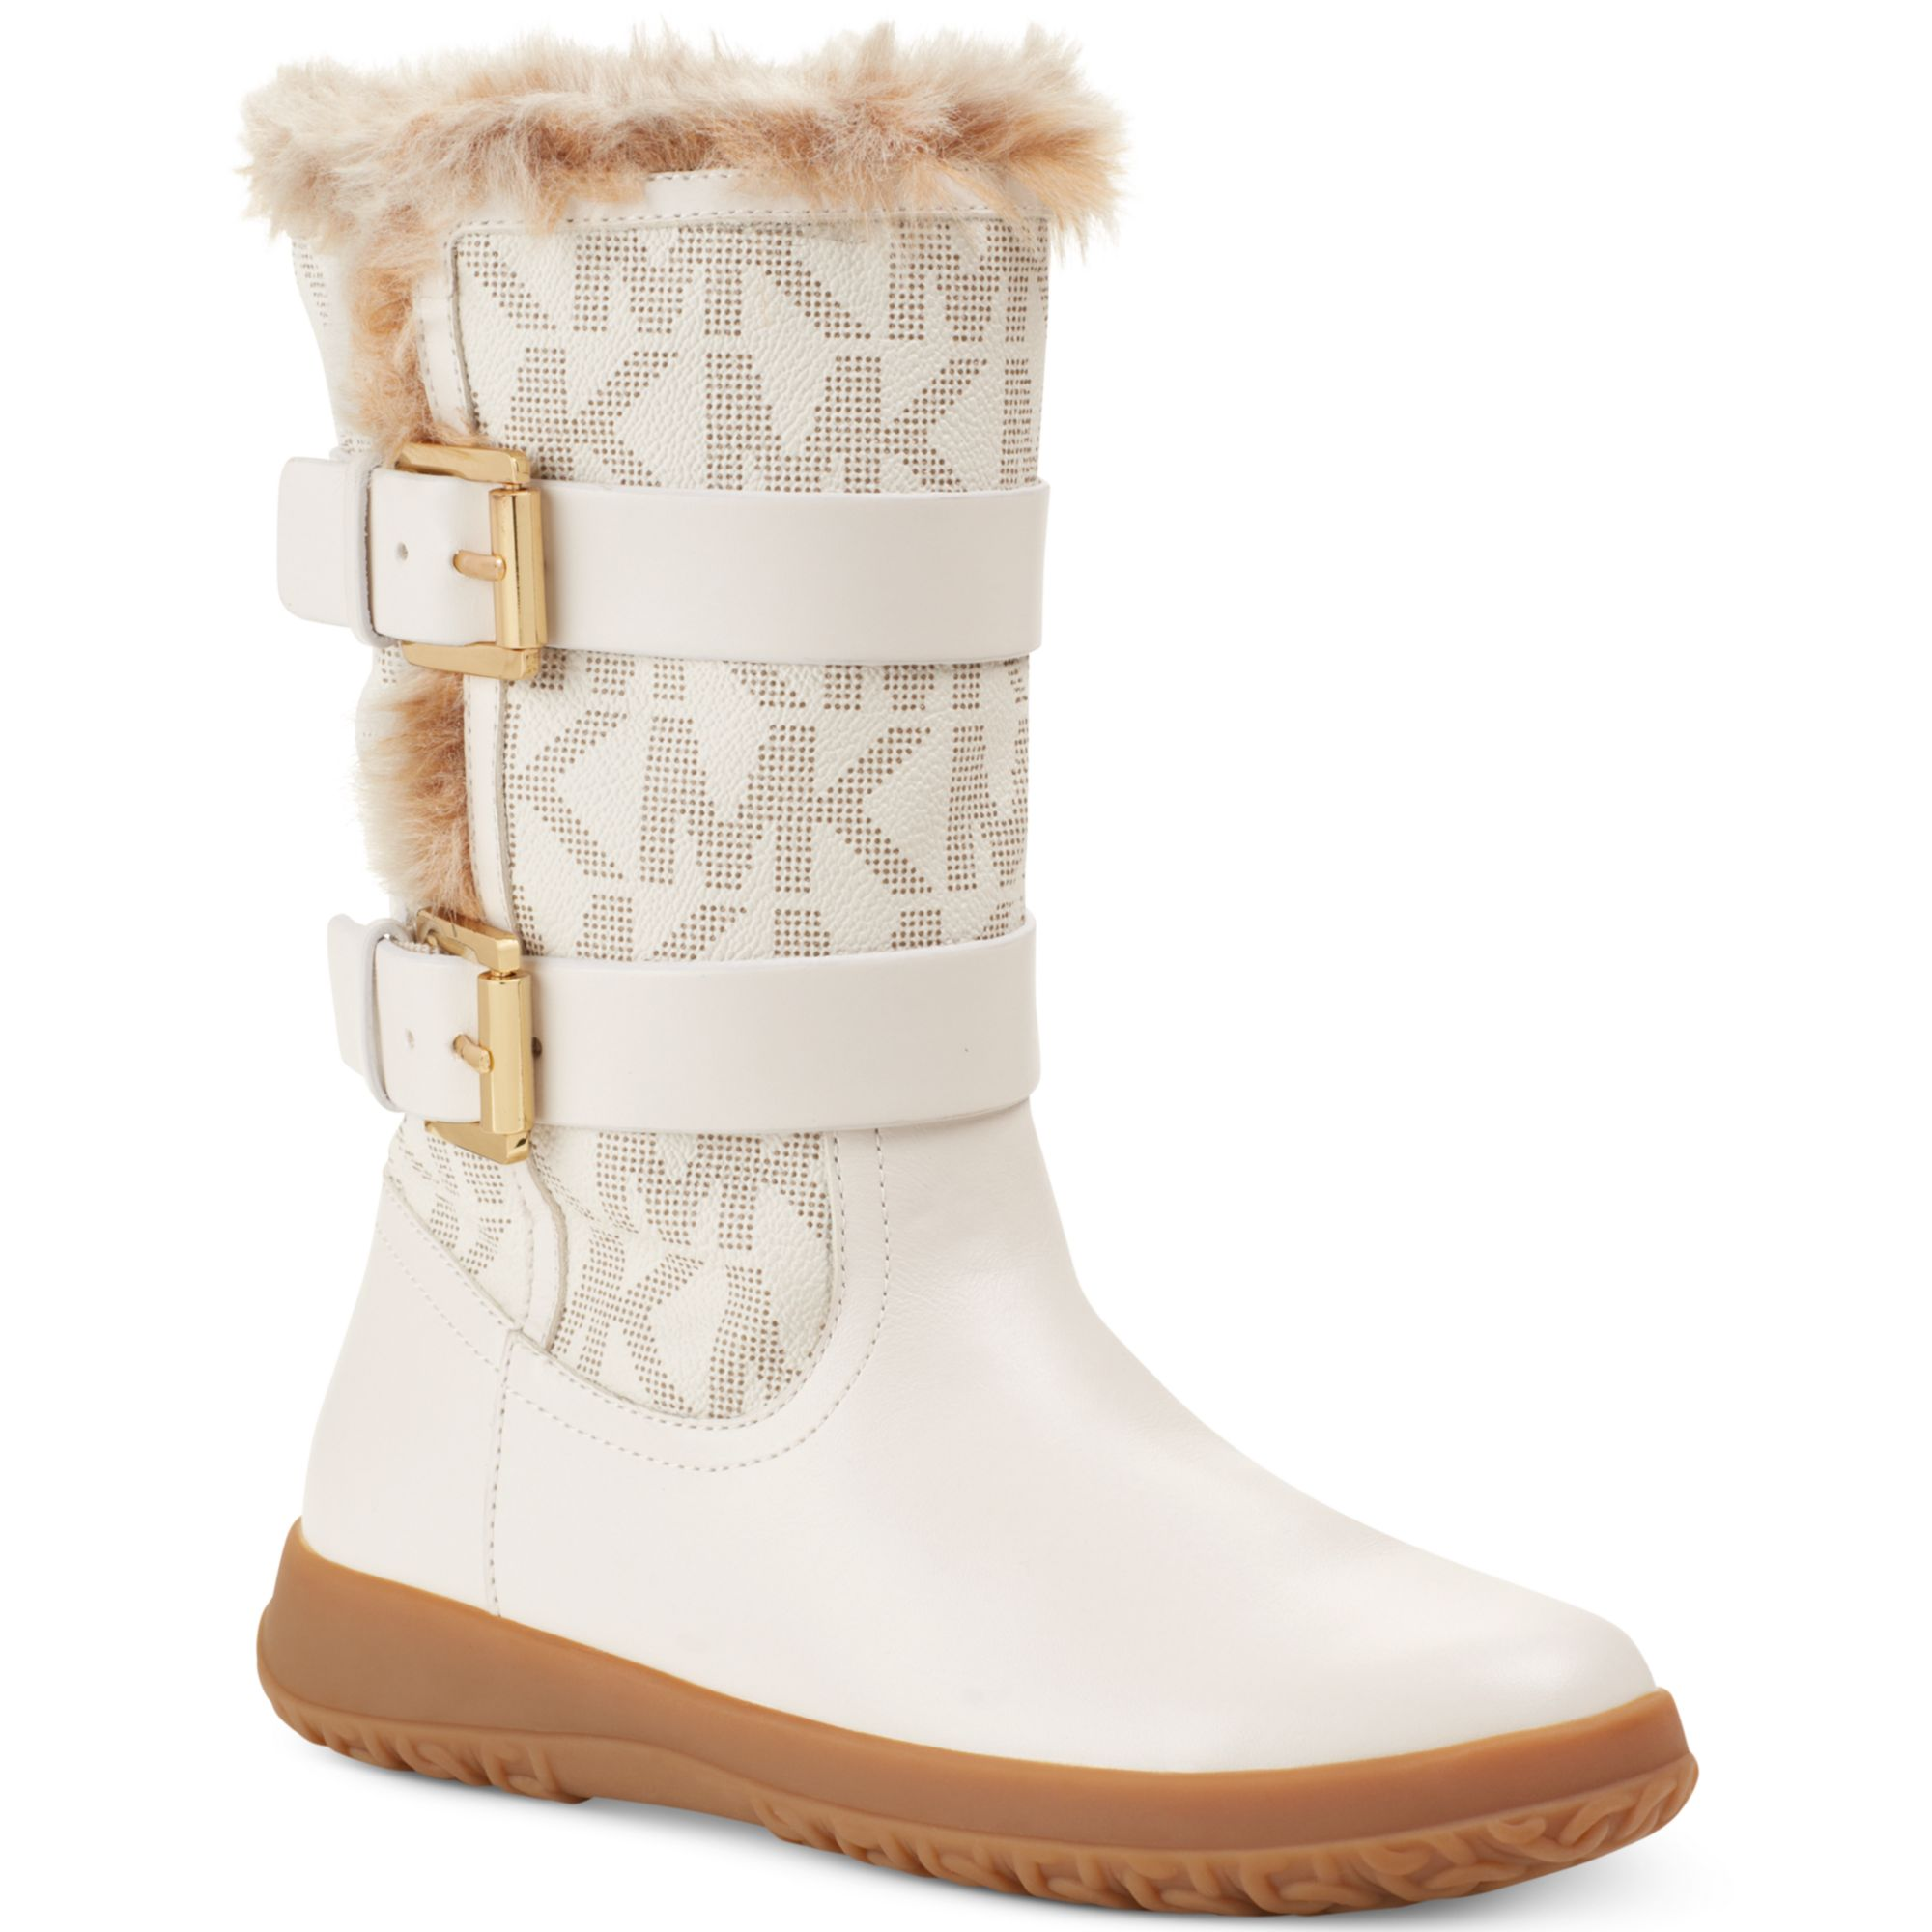 mk boots for sale michael kors on sale